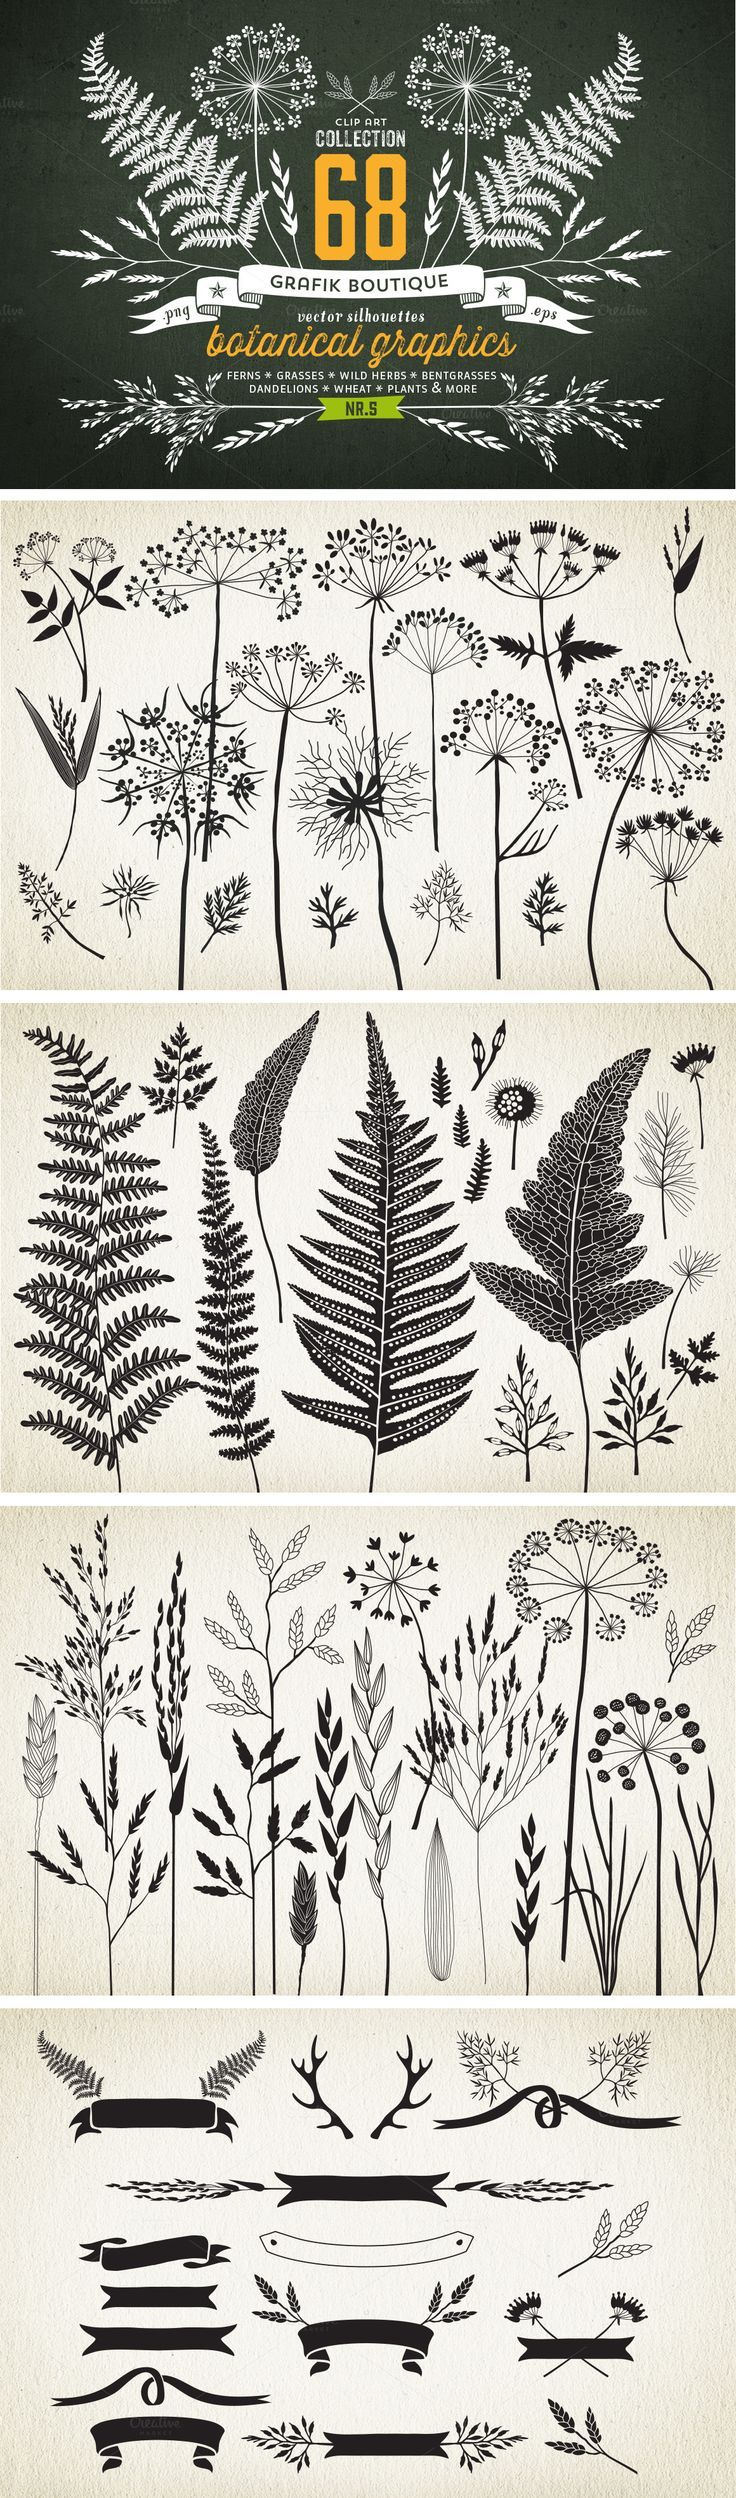 Botanical element illustrations… *IDEA* try printing to give a sense of surrou…